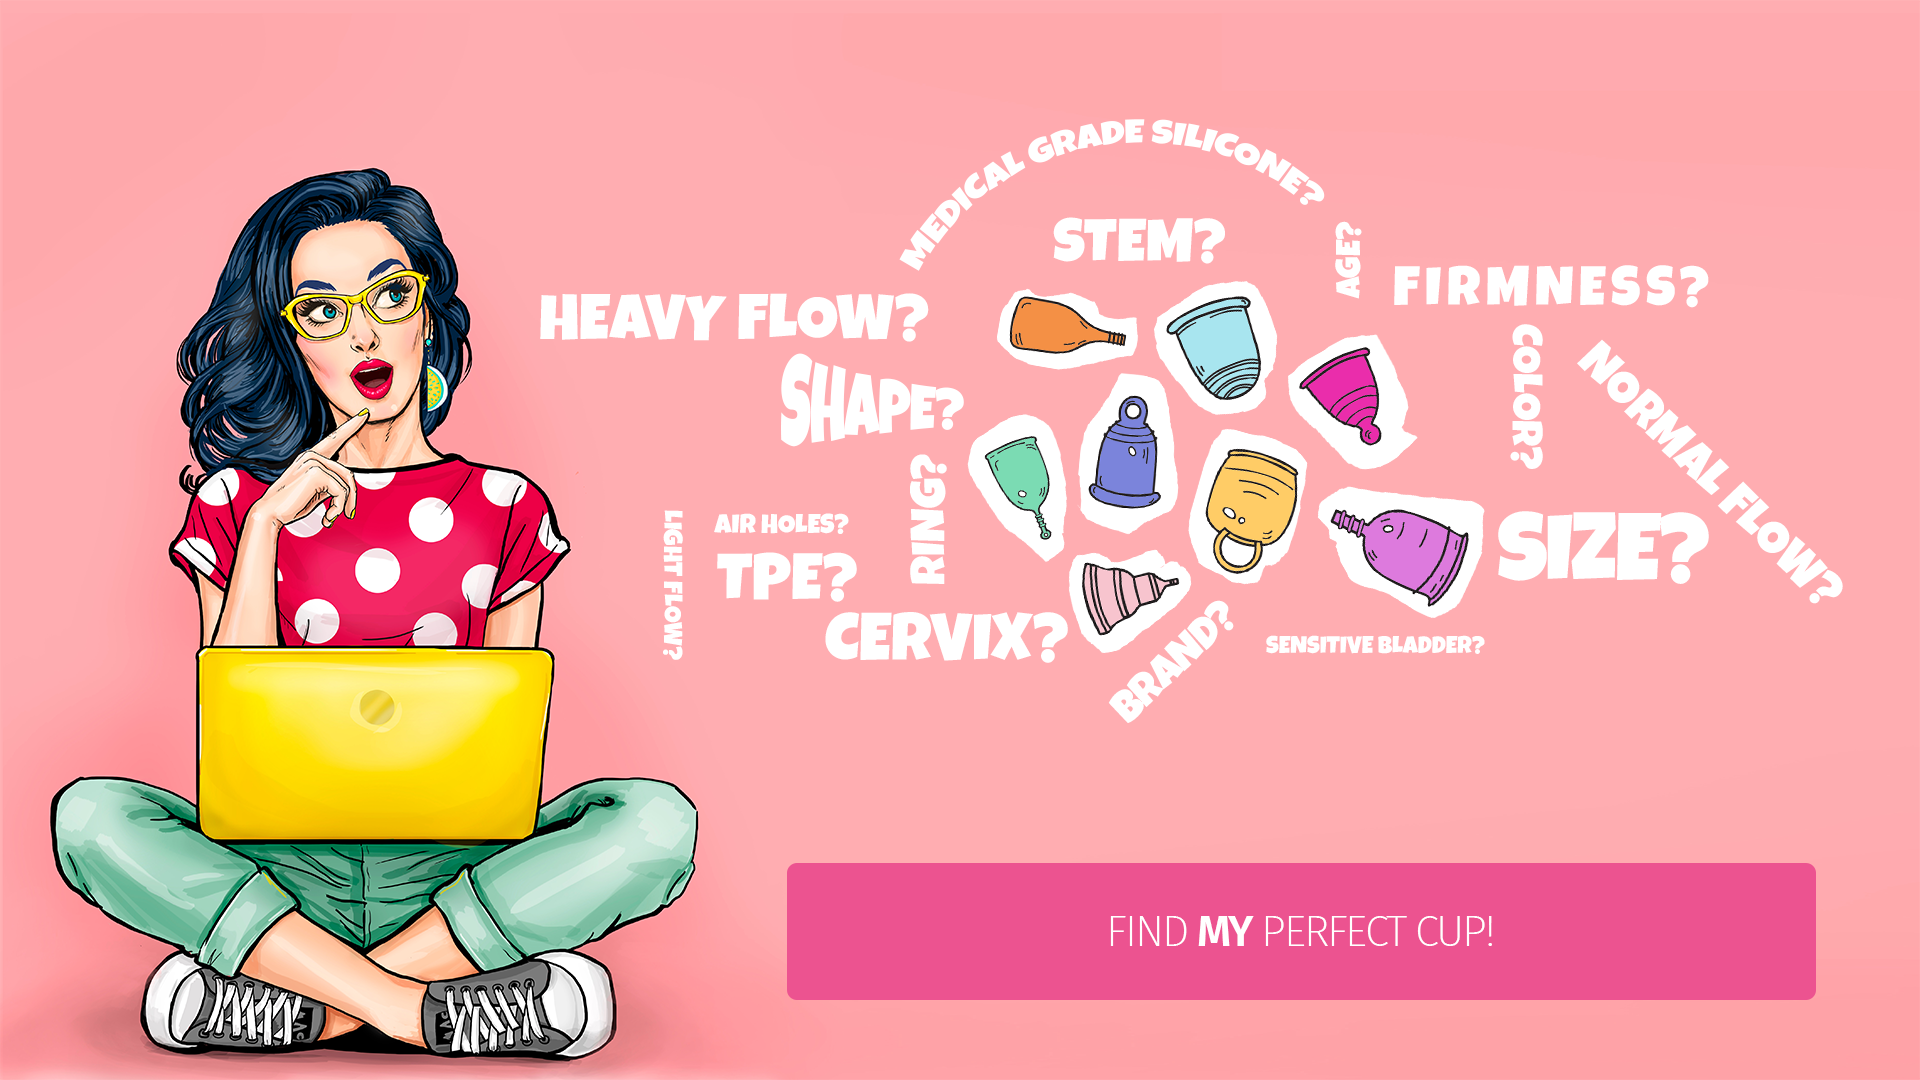 Find my perfect menstrual cup